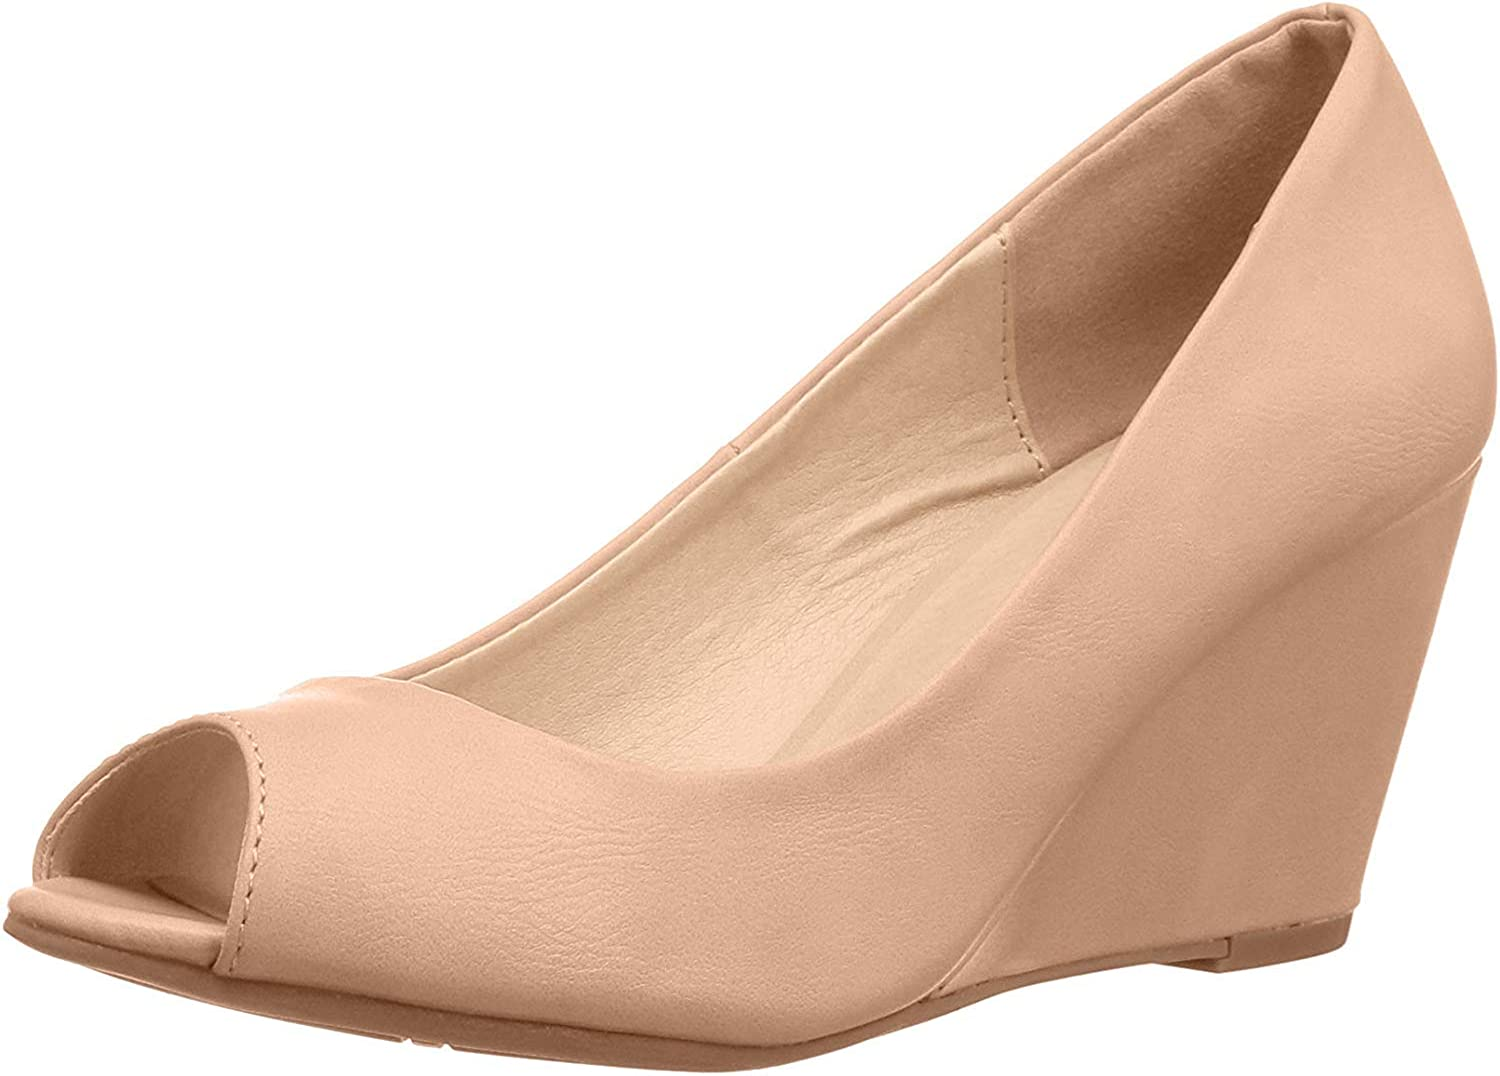 CL by Chinese Laundry Women's Noreen Wedge Pump